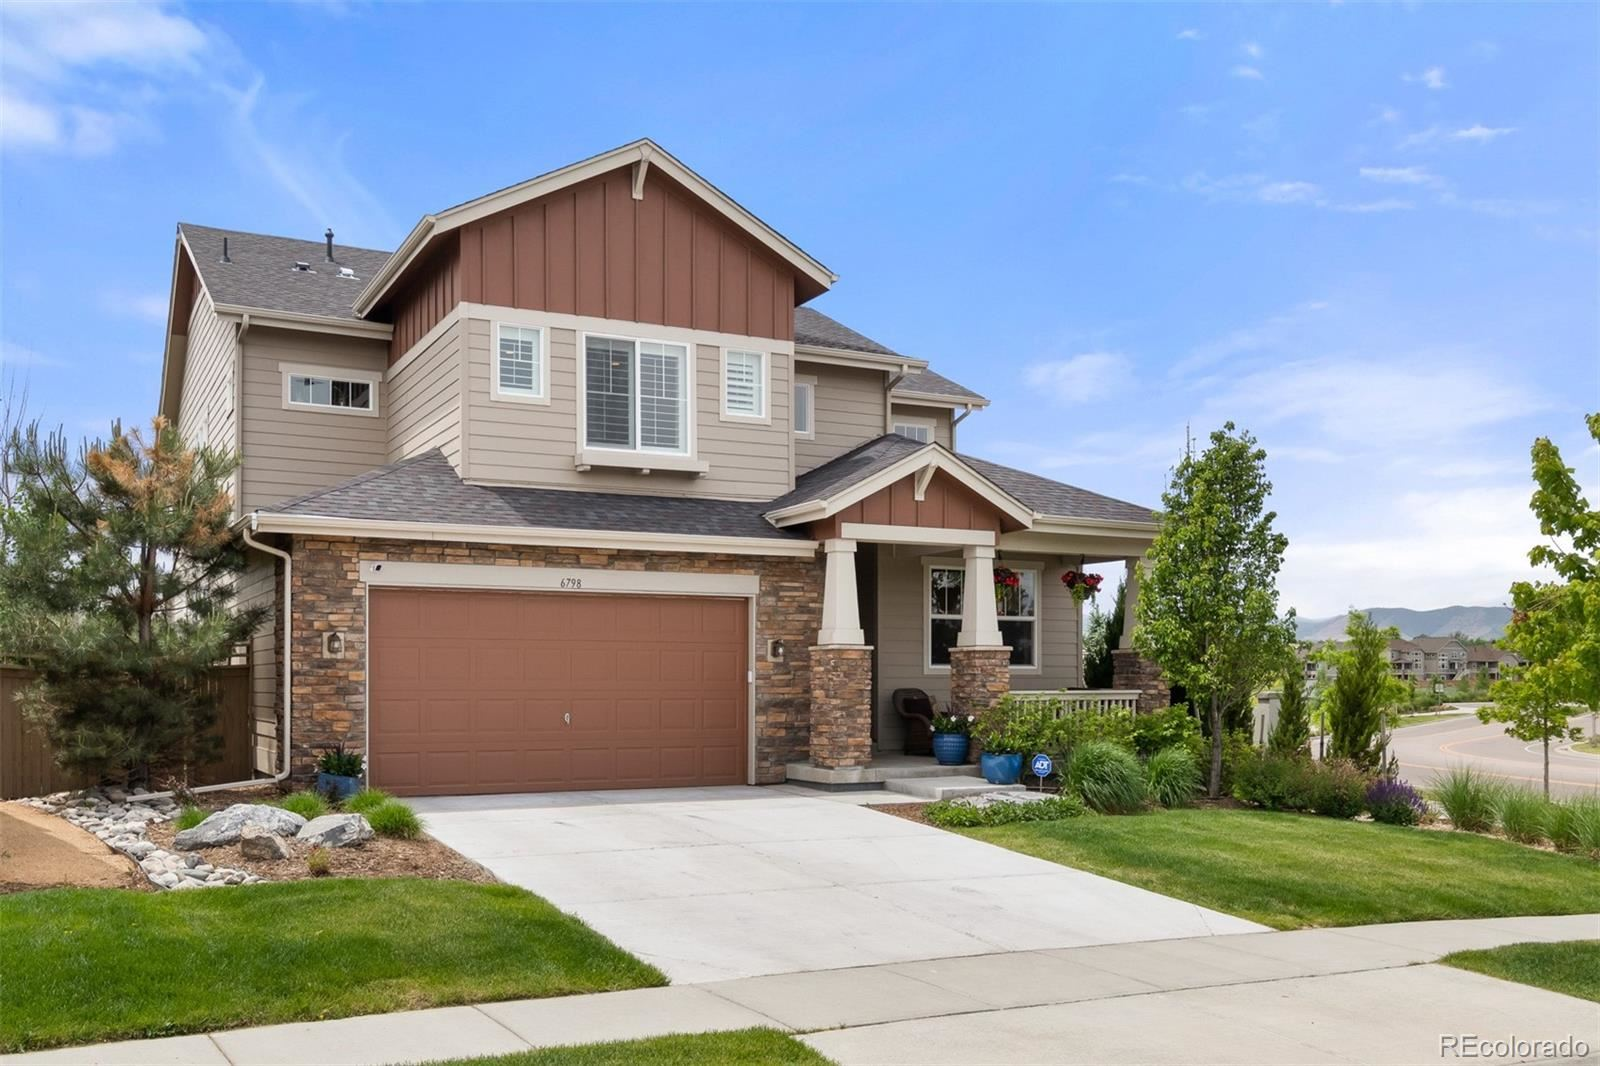 6798 W Jewell Place, Lakewood, CO 80227 - #: 7758733